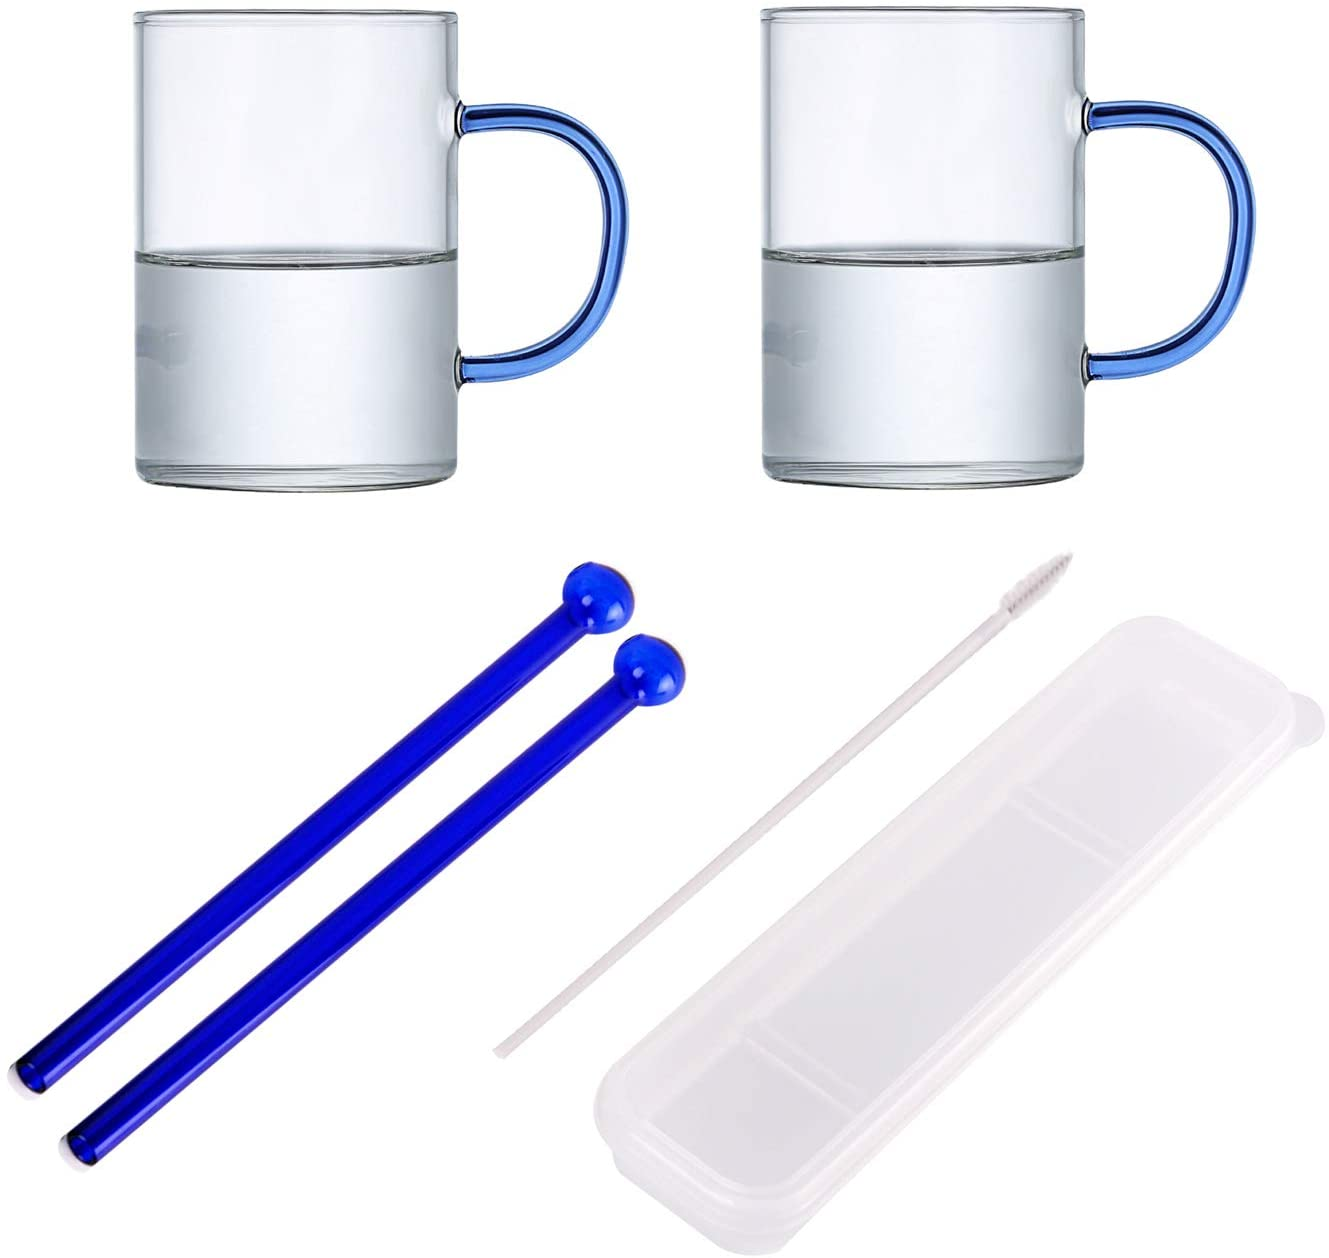 R FLORY Drinking Glass Jar Mugs with Handle and Straws Drinking Glass Beer Cocktail Wine Whiskey Cup Set (Blue)